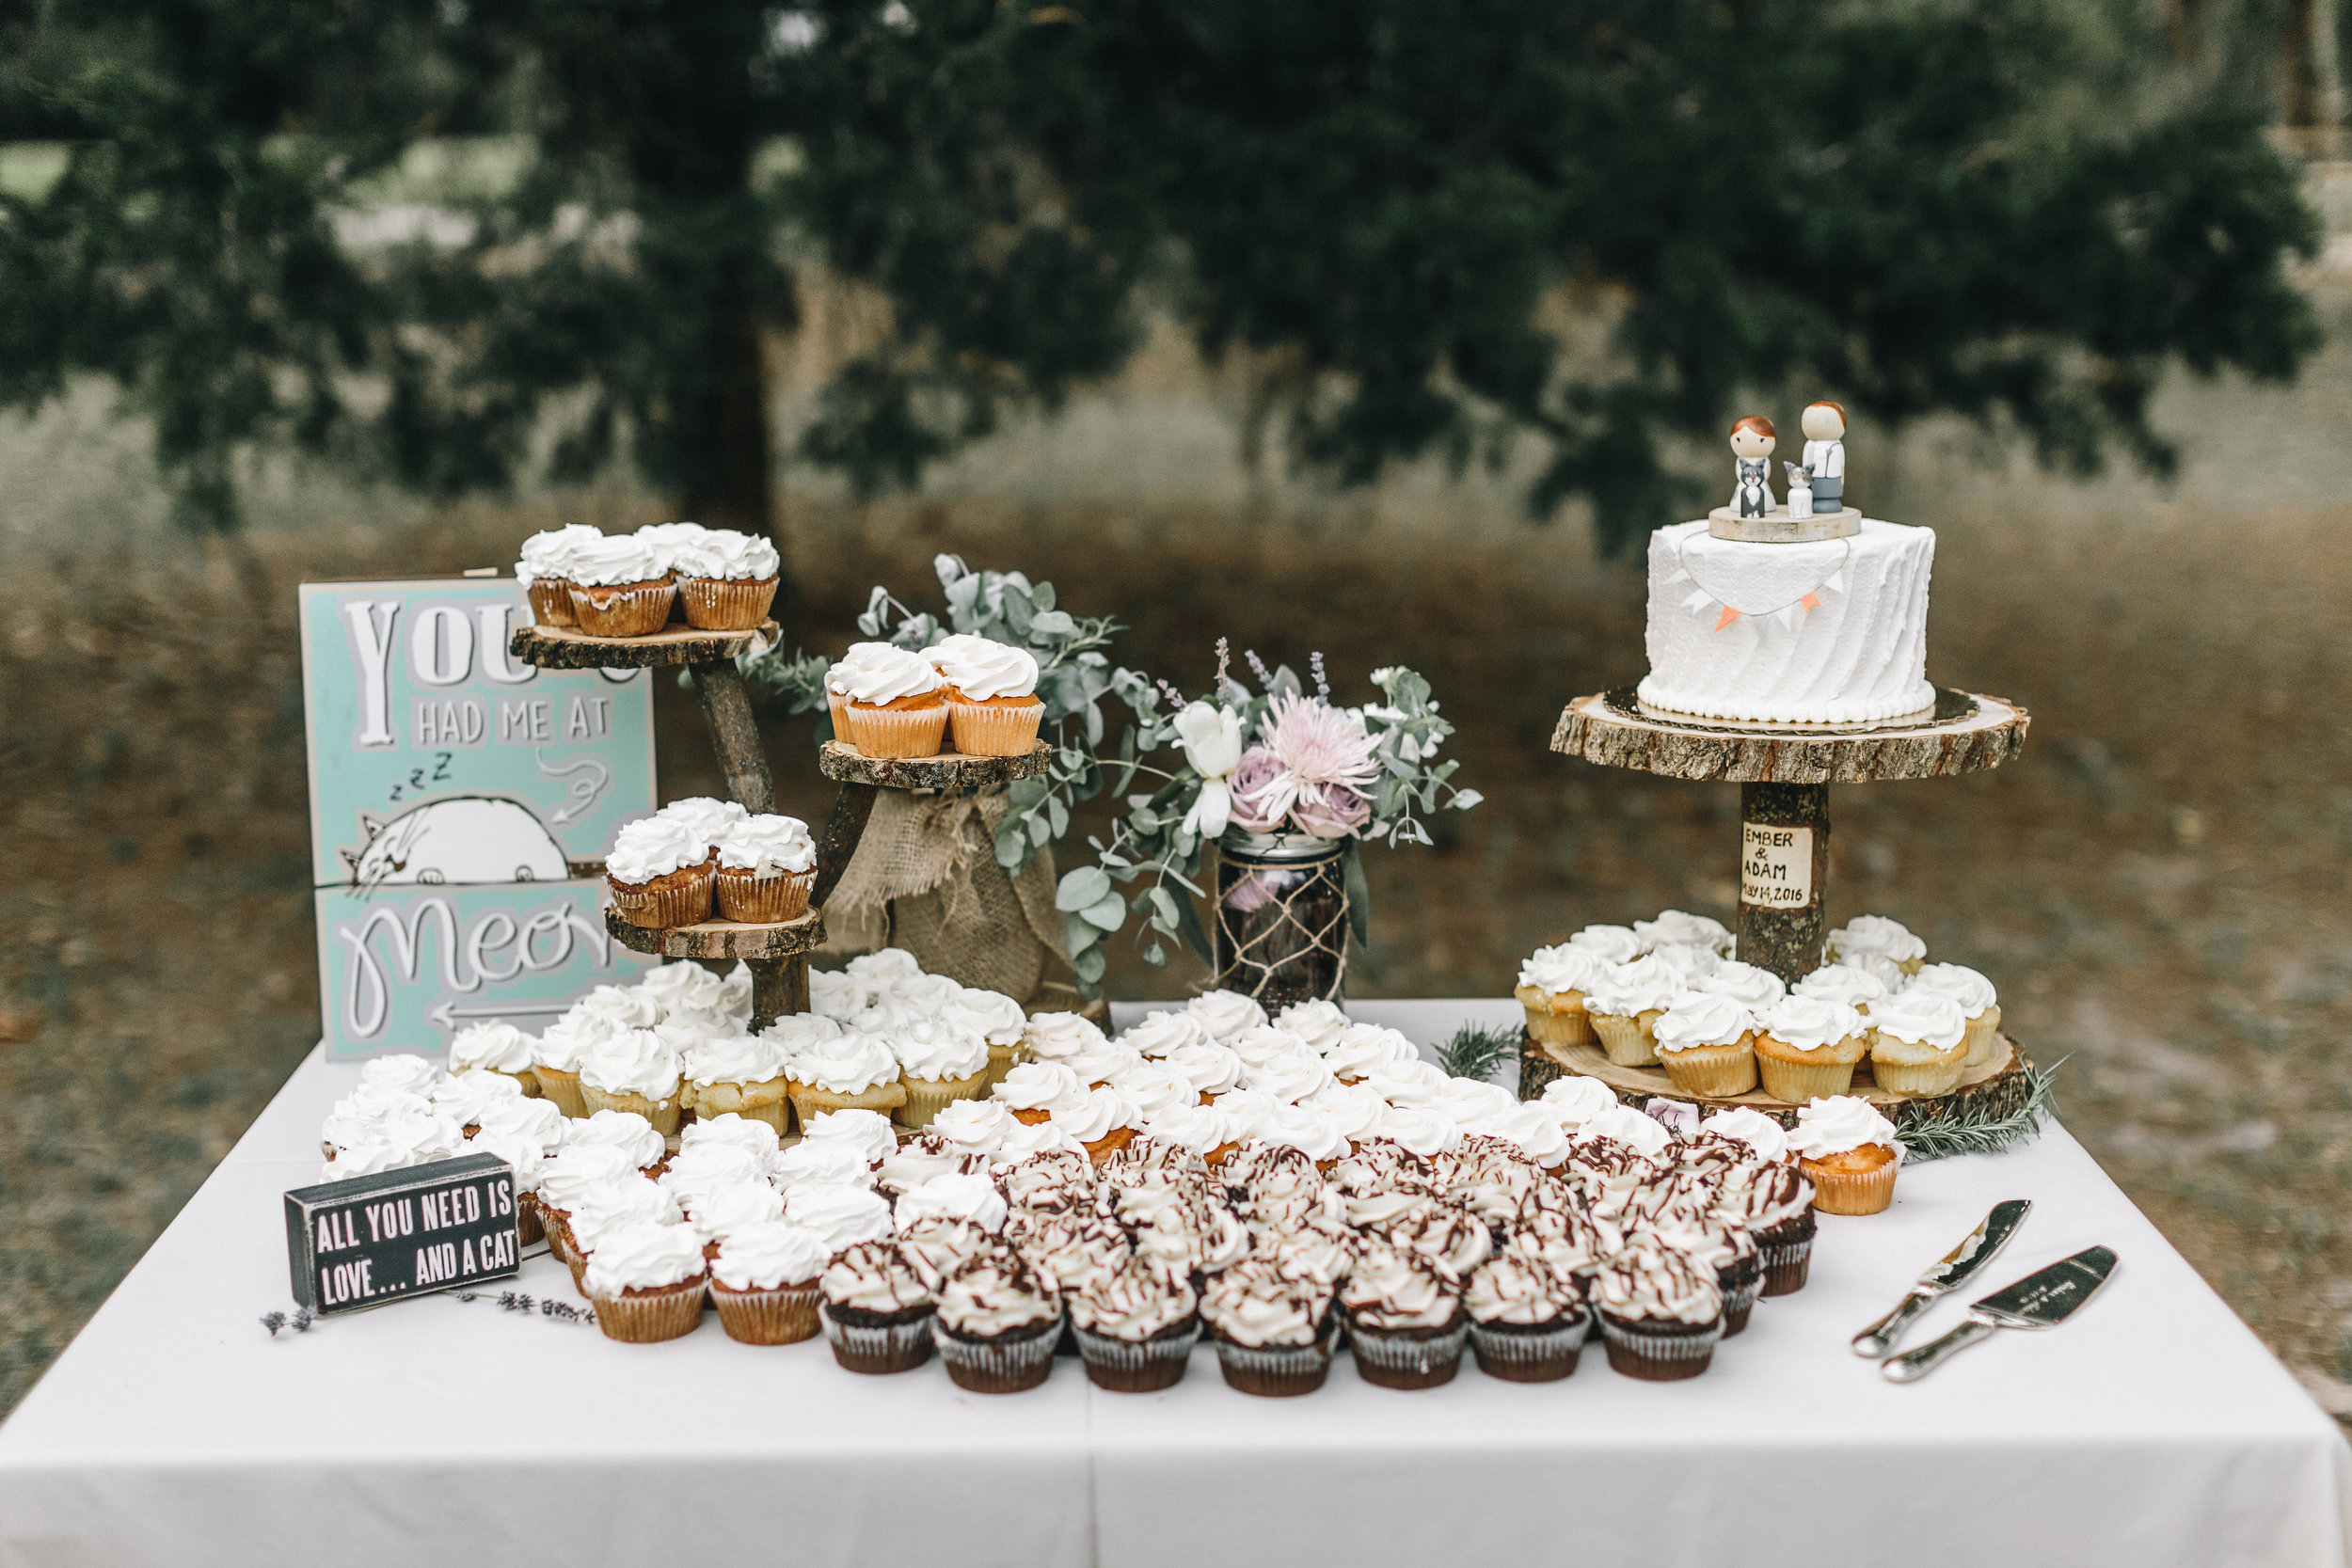 Ember + Adam's Dunham Farms wedding in Georgia by Mackensey Alexander Photography and Ivory + Beau on A Lowcountry Wedding Magazine